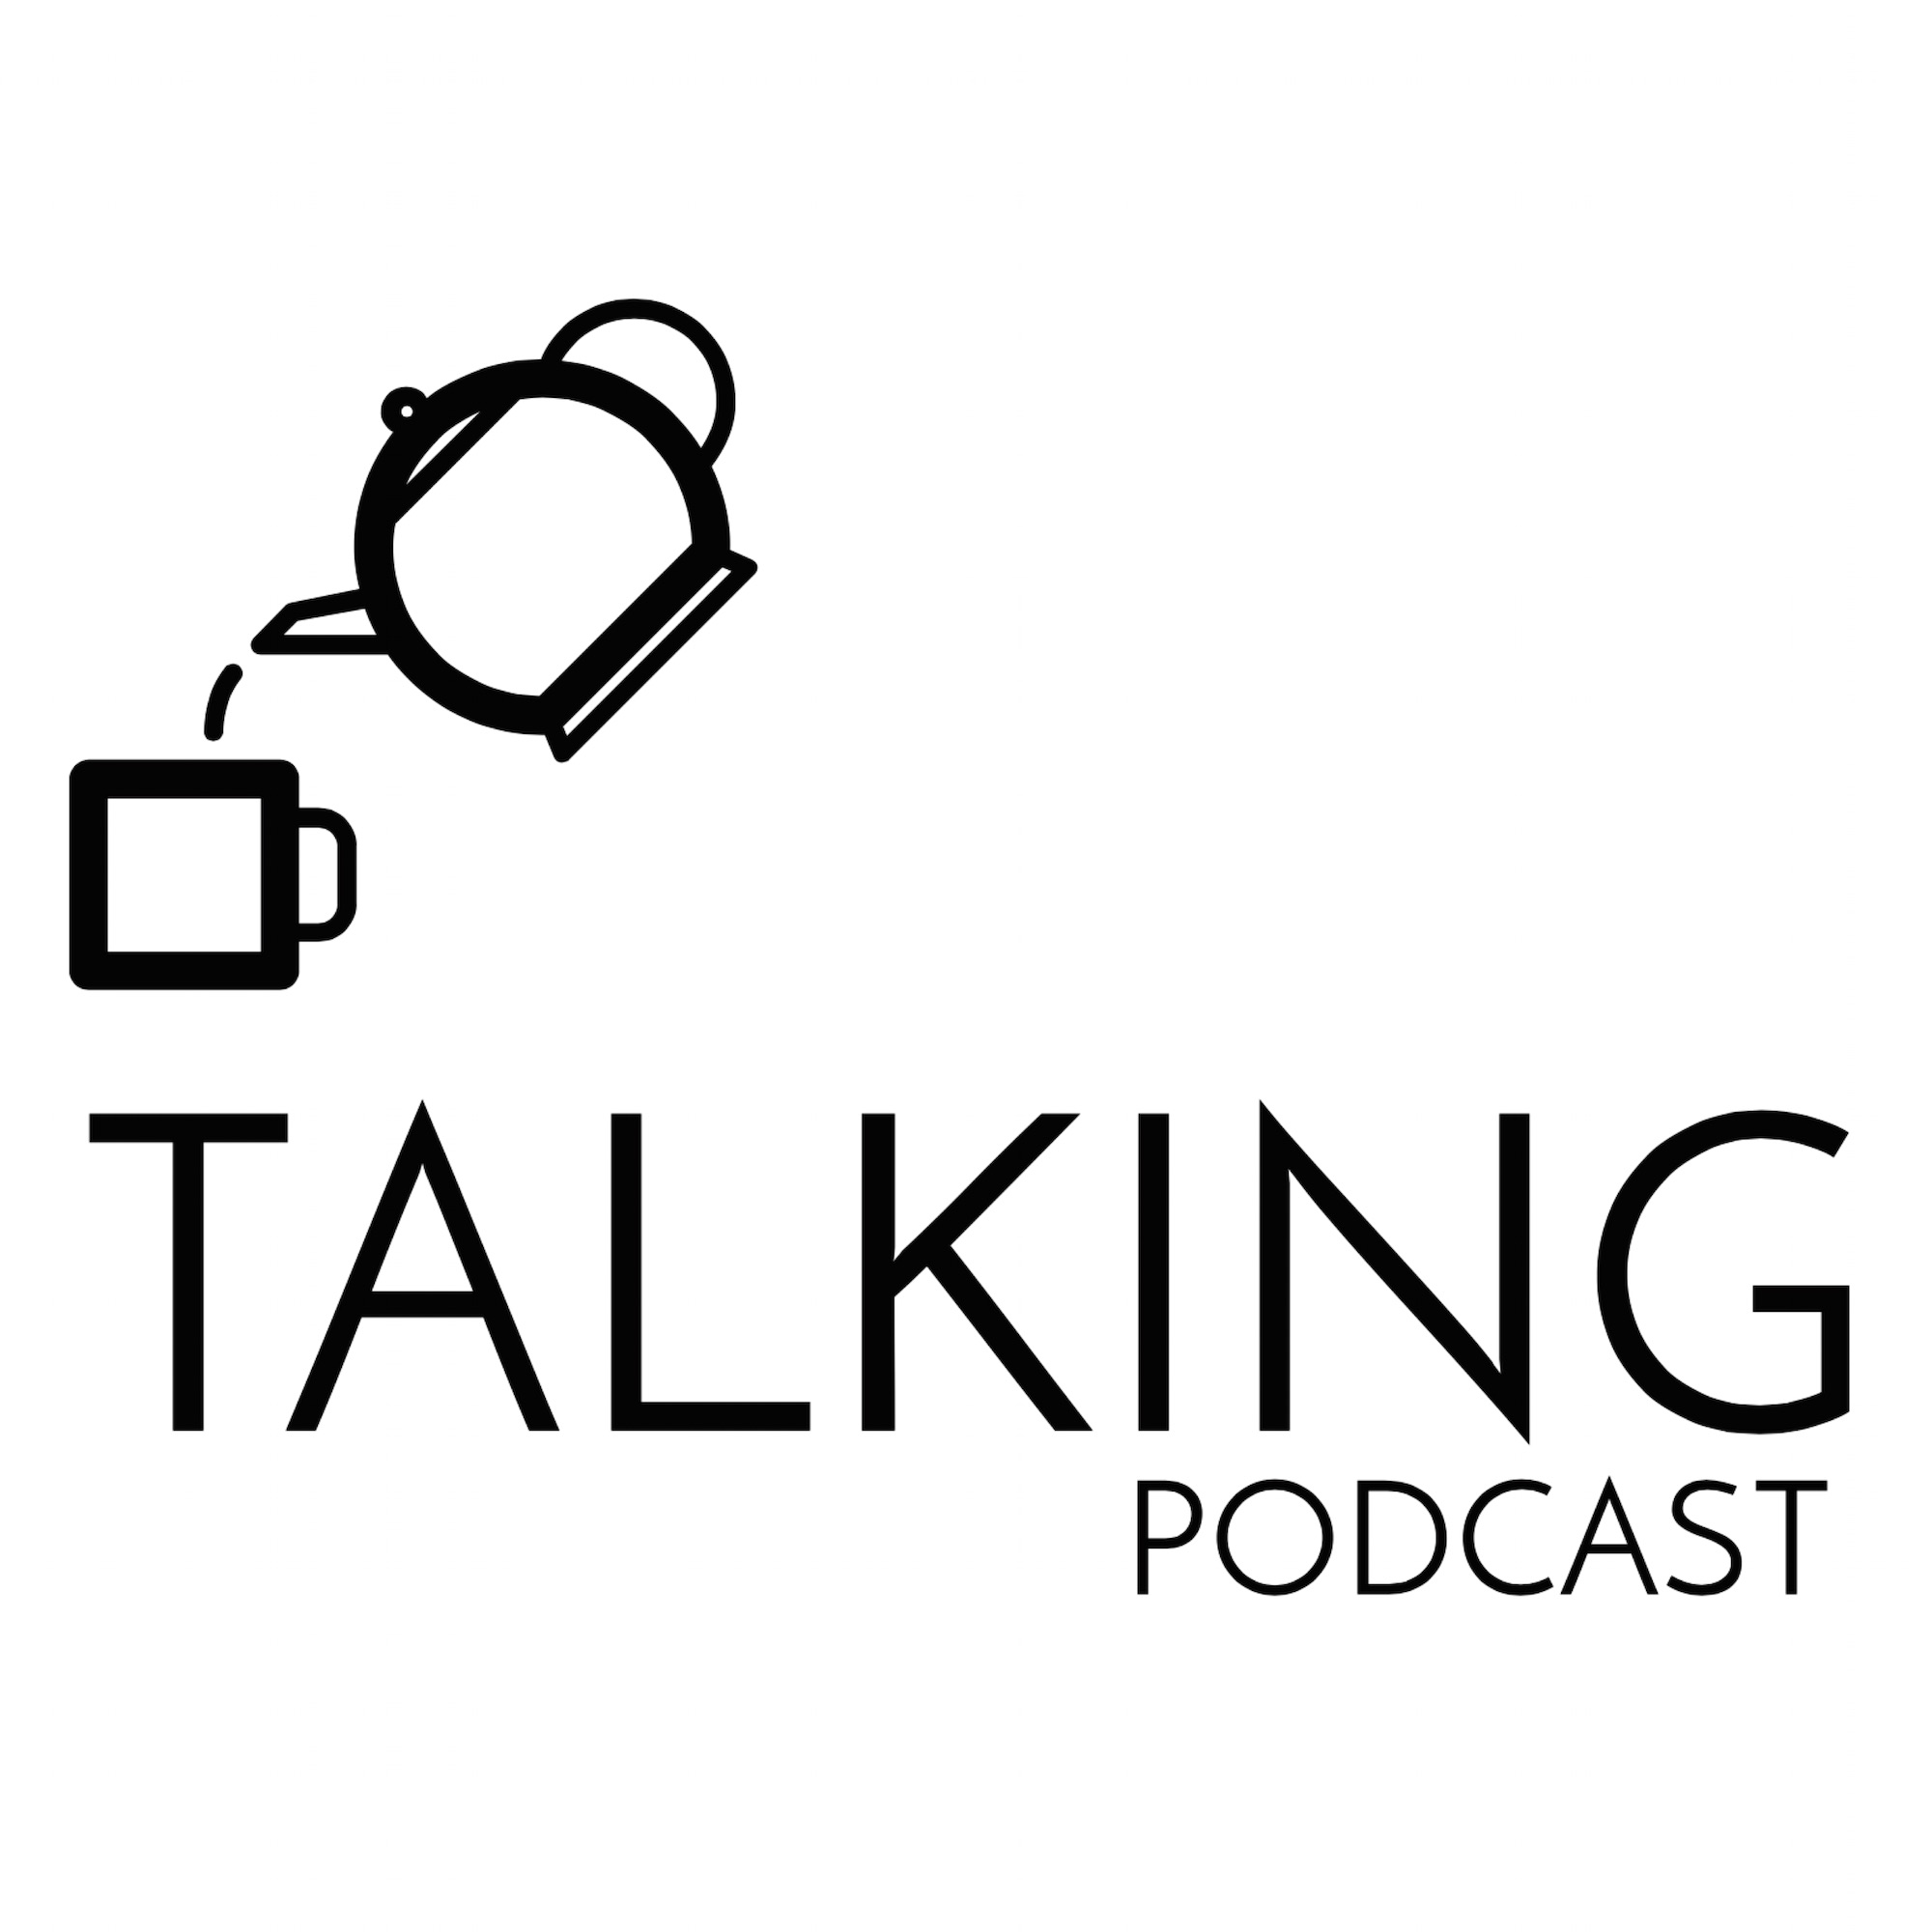 Talking Podcast